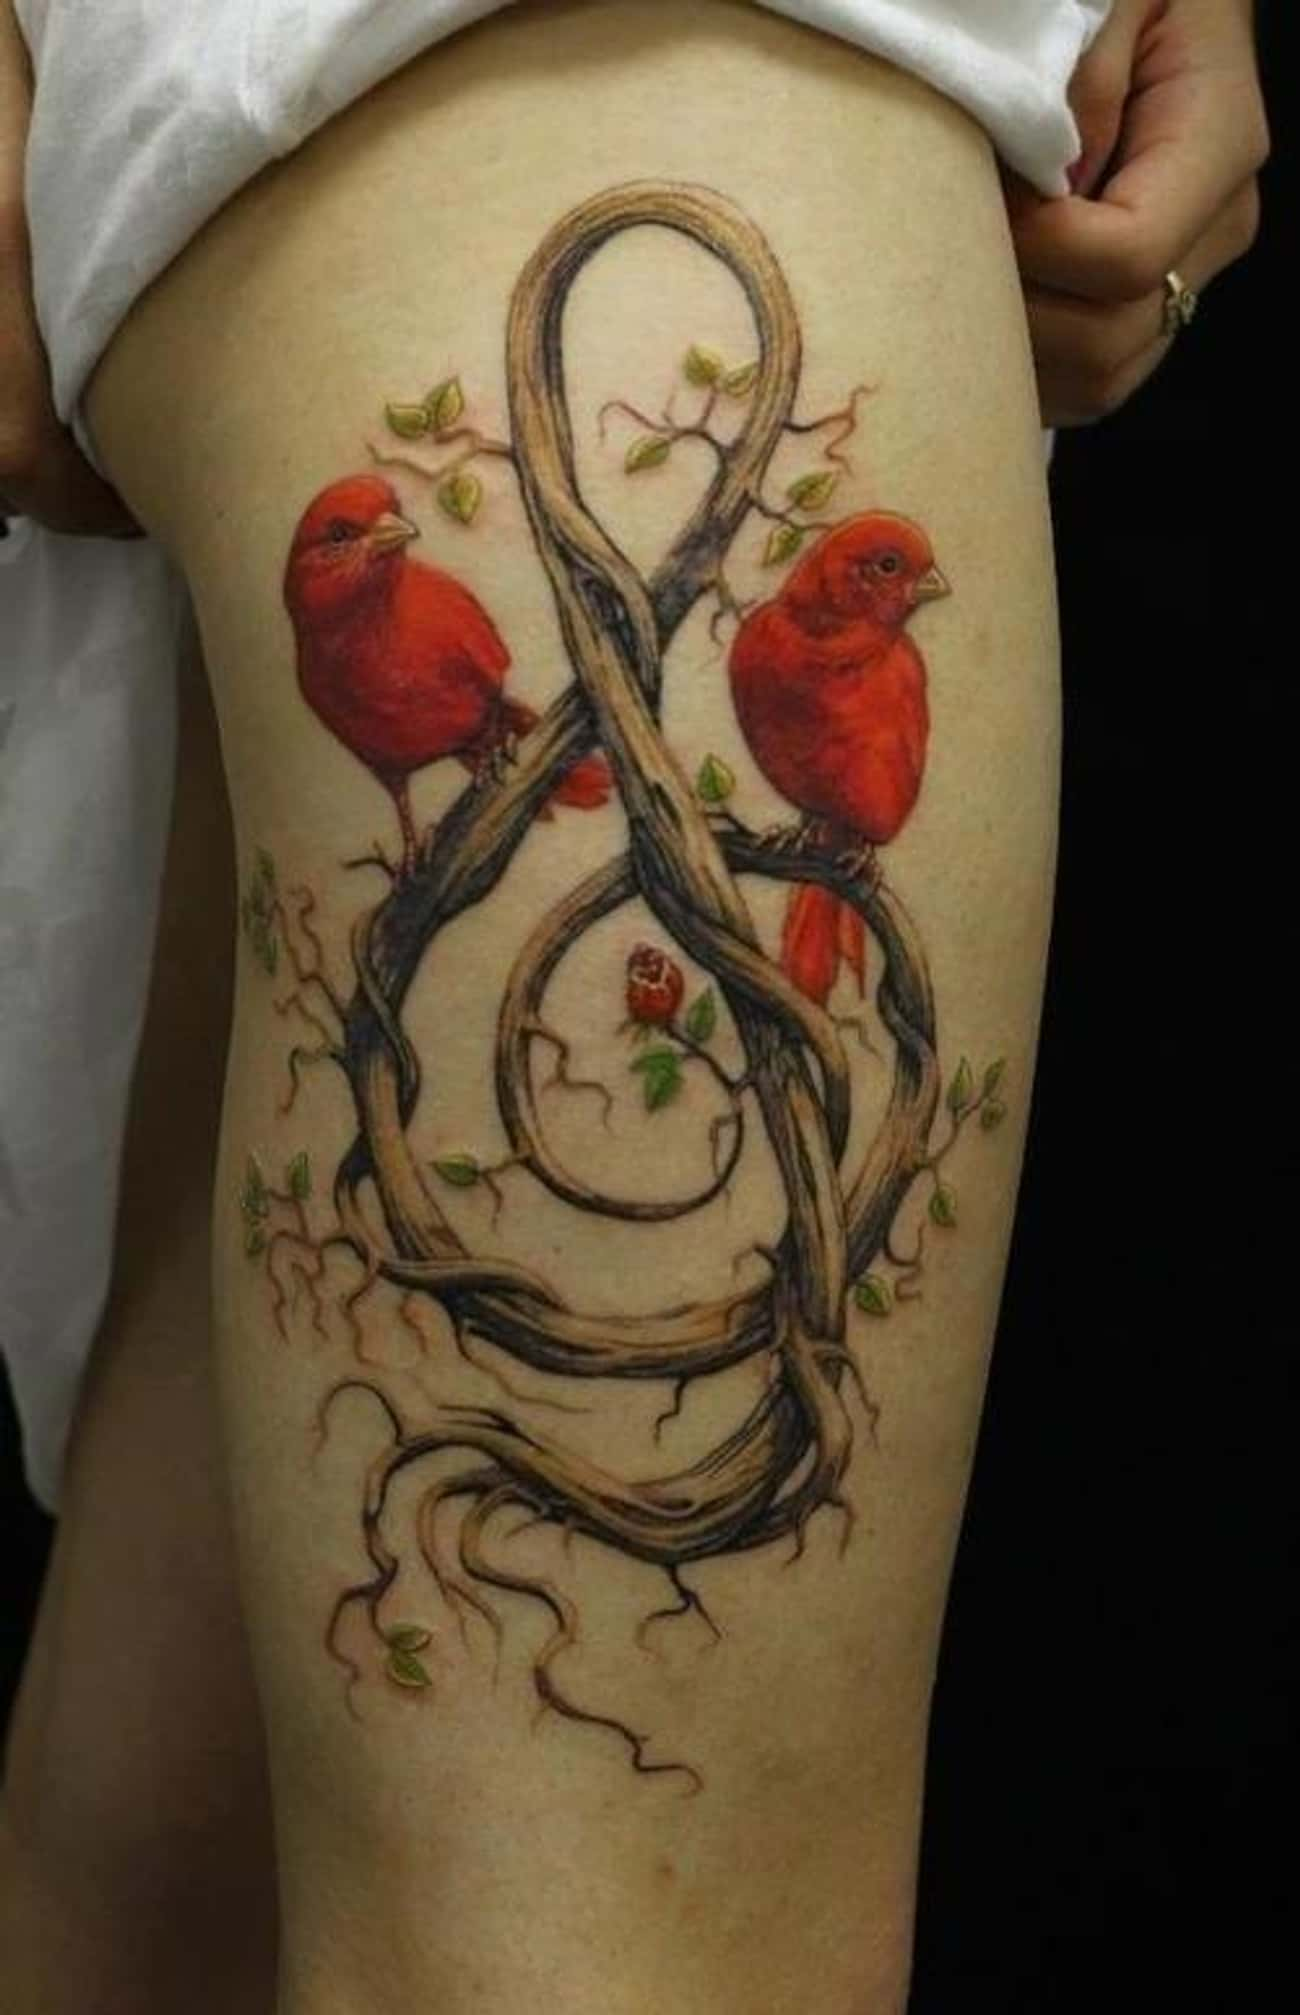 This Intricate Tattoo of Love  is listed (or ranked) 4 on the list 45 Amazing Nature Tattoos